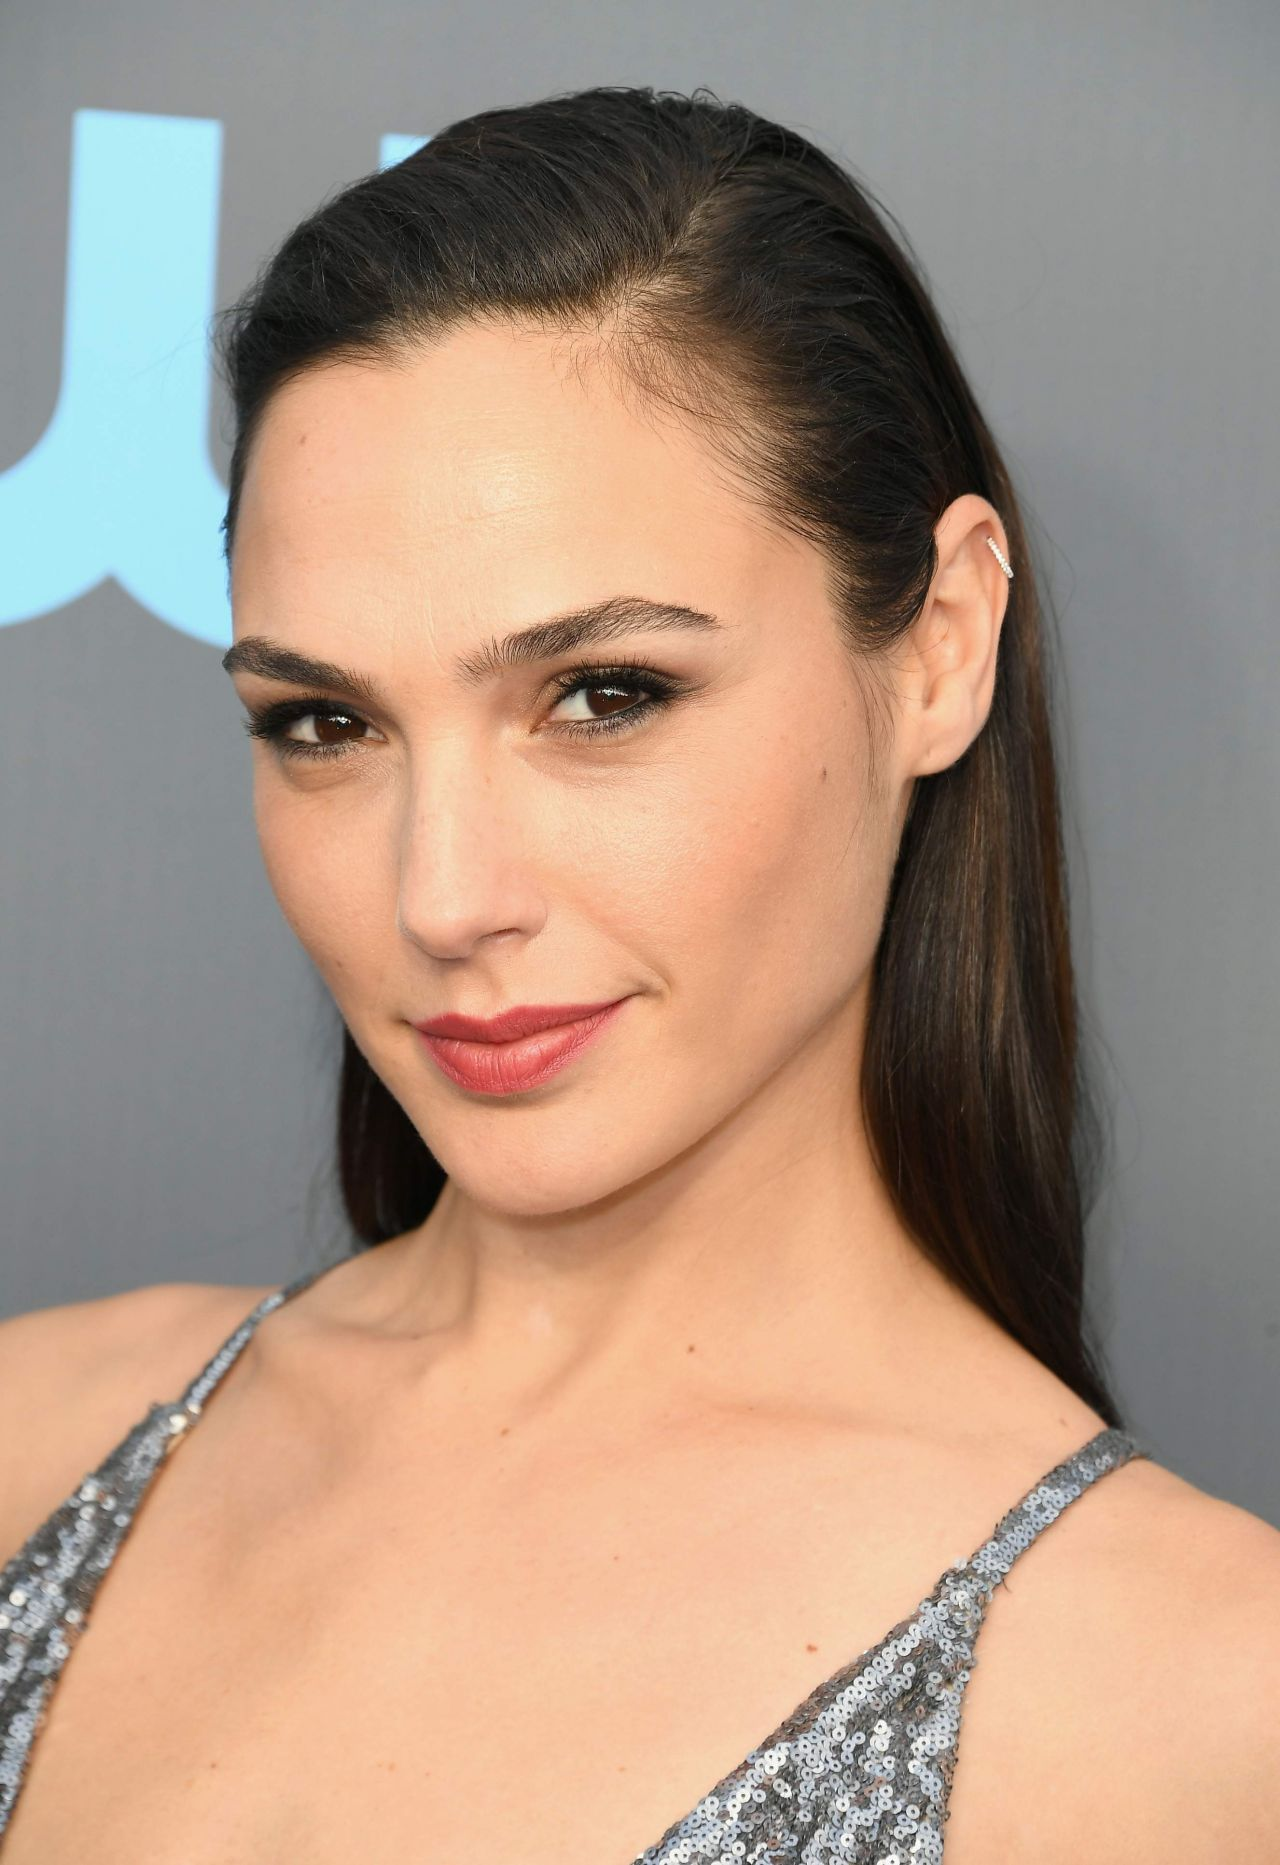 Gal Gadot photo 536 of 551 pics, wallpaper - photo #997947 ... Ryan Reynolds Md